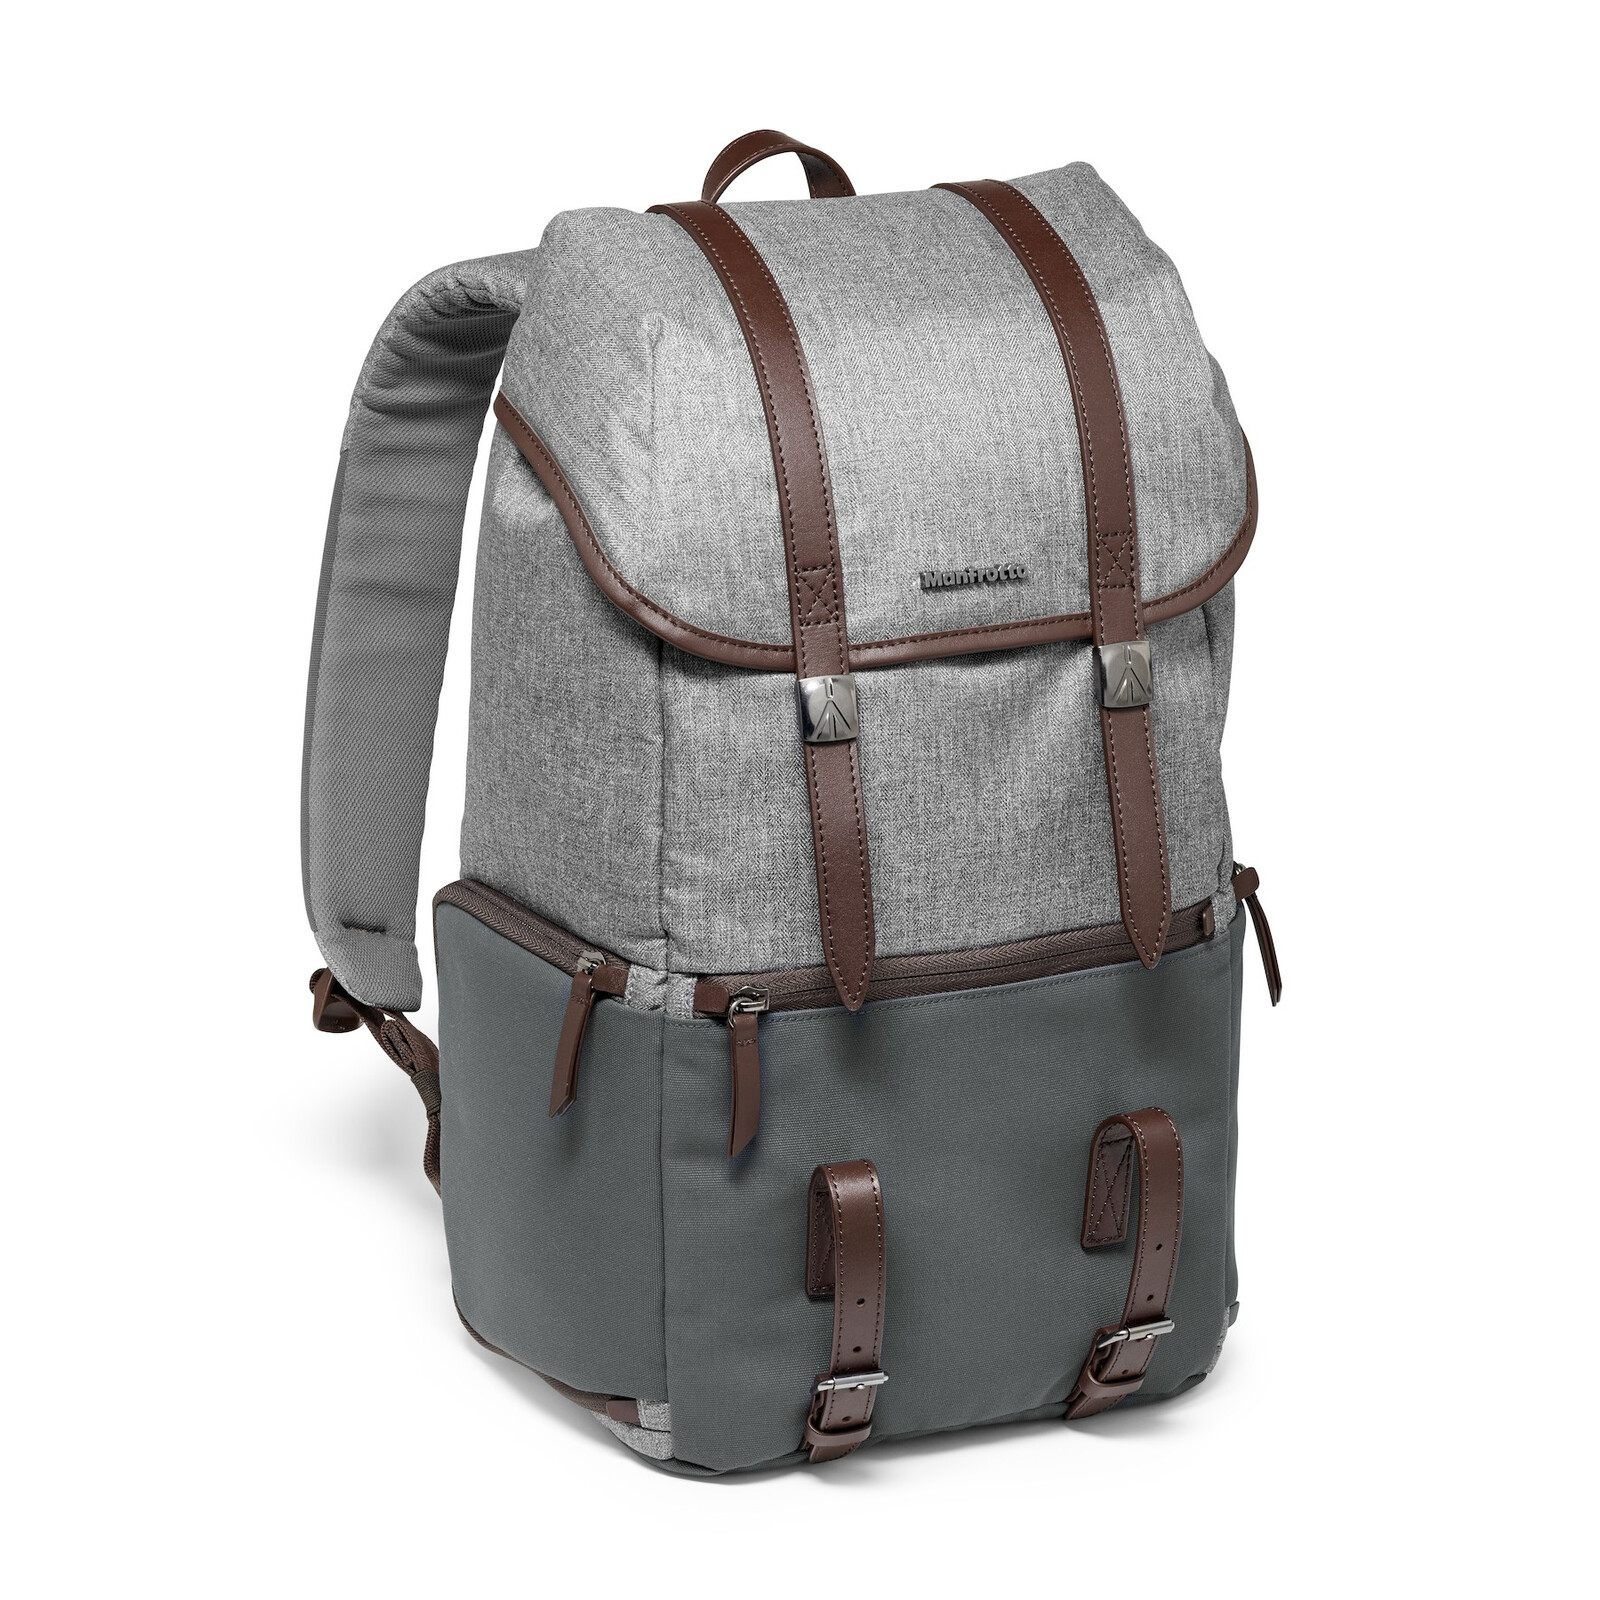 Manfrotto Lifestyle Windsor Rucksack